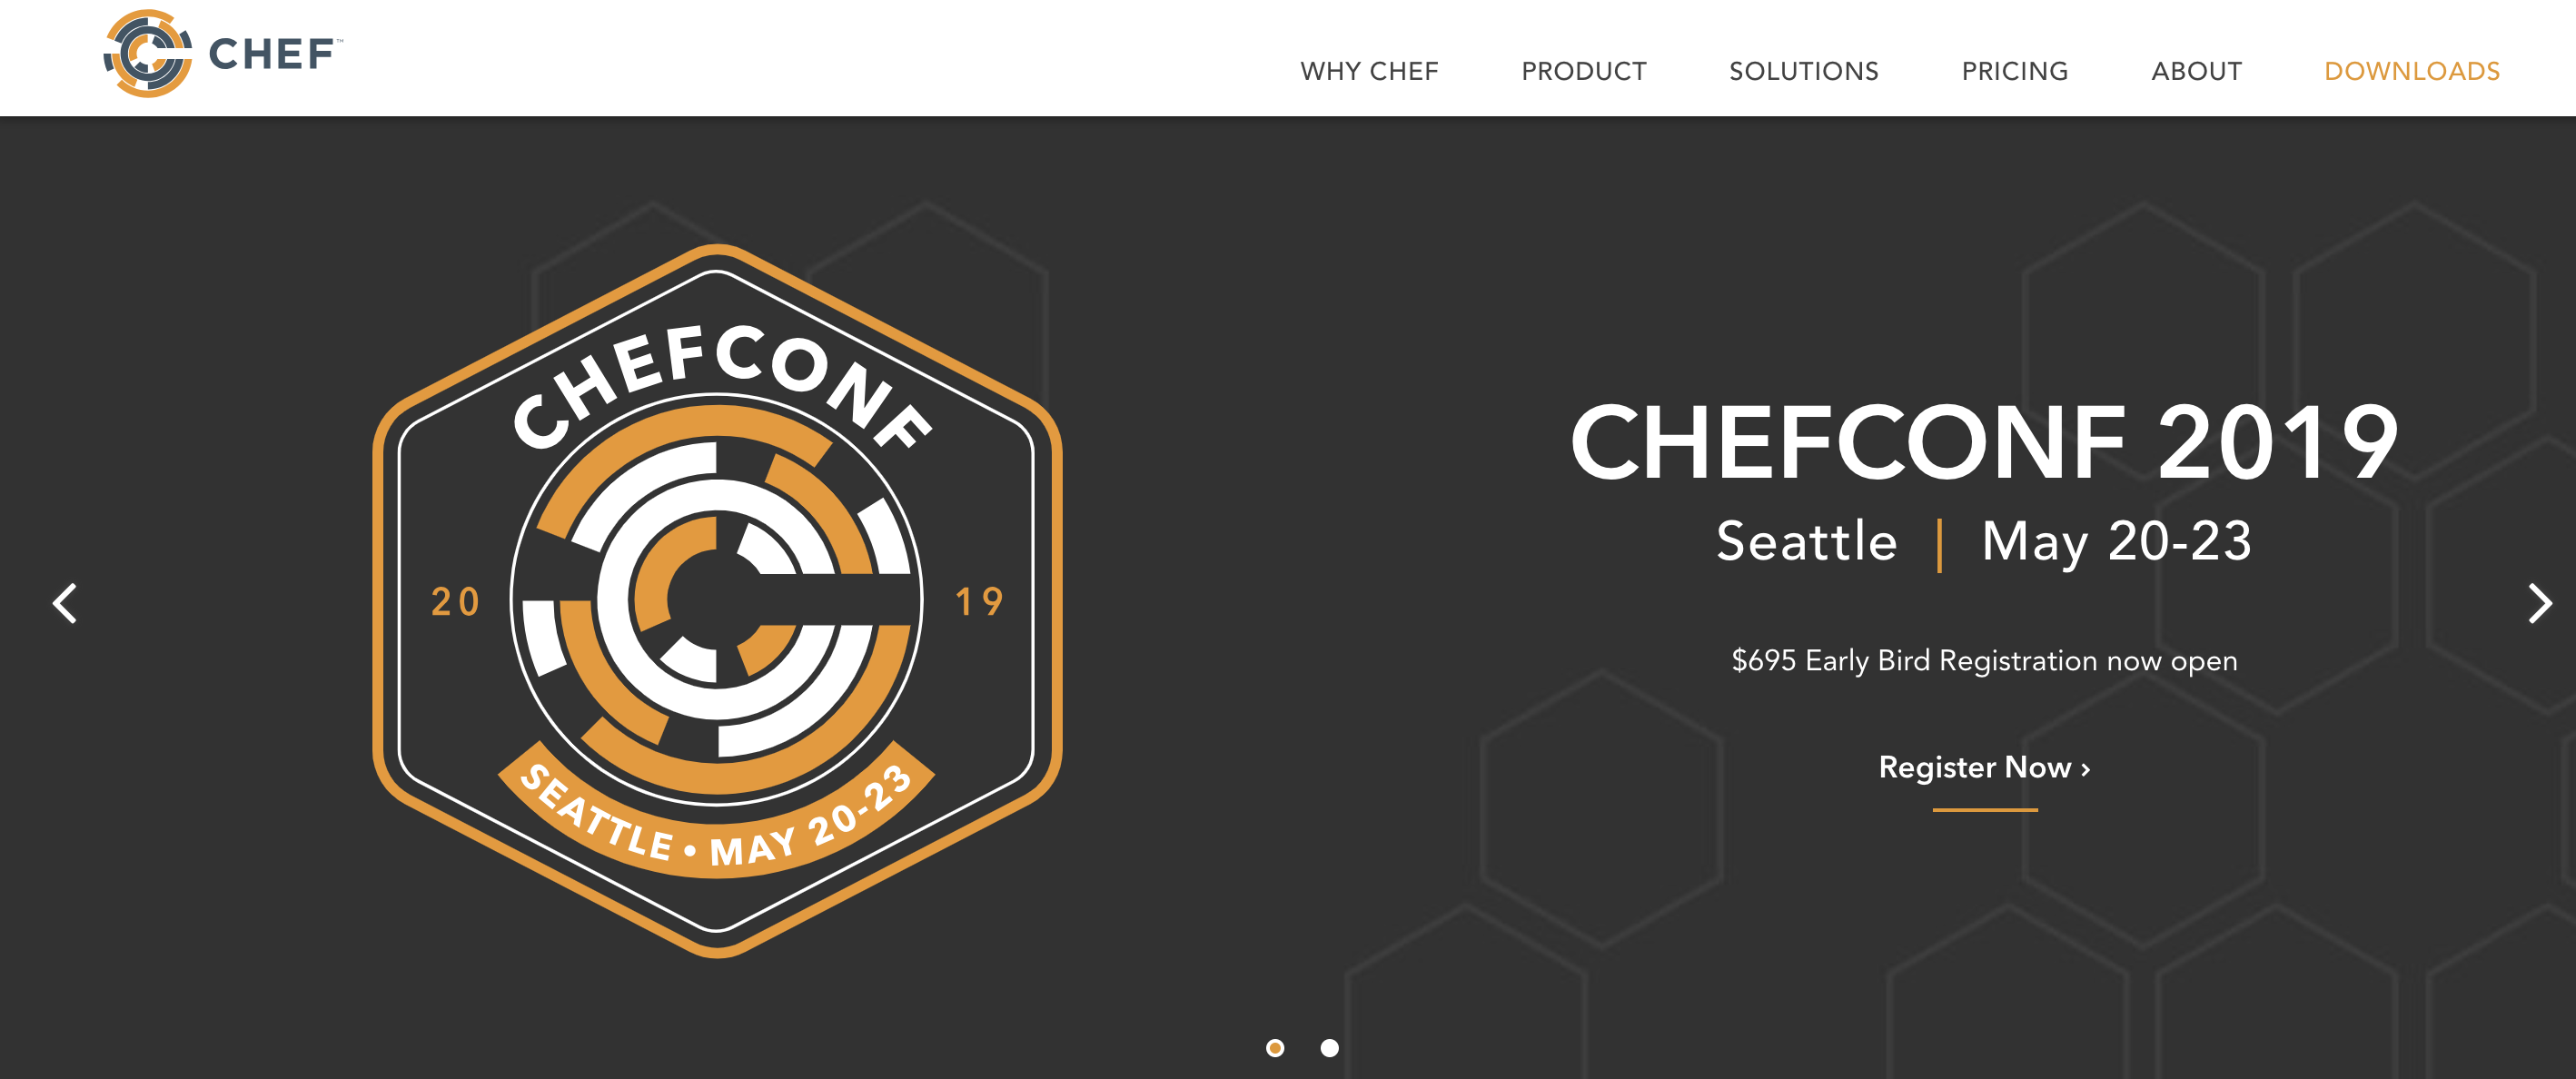 Chef Homepage Screenshot